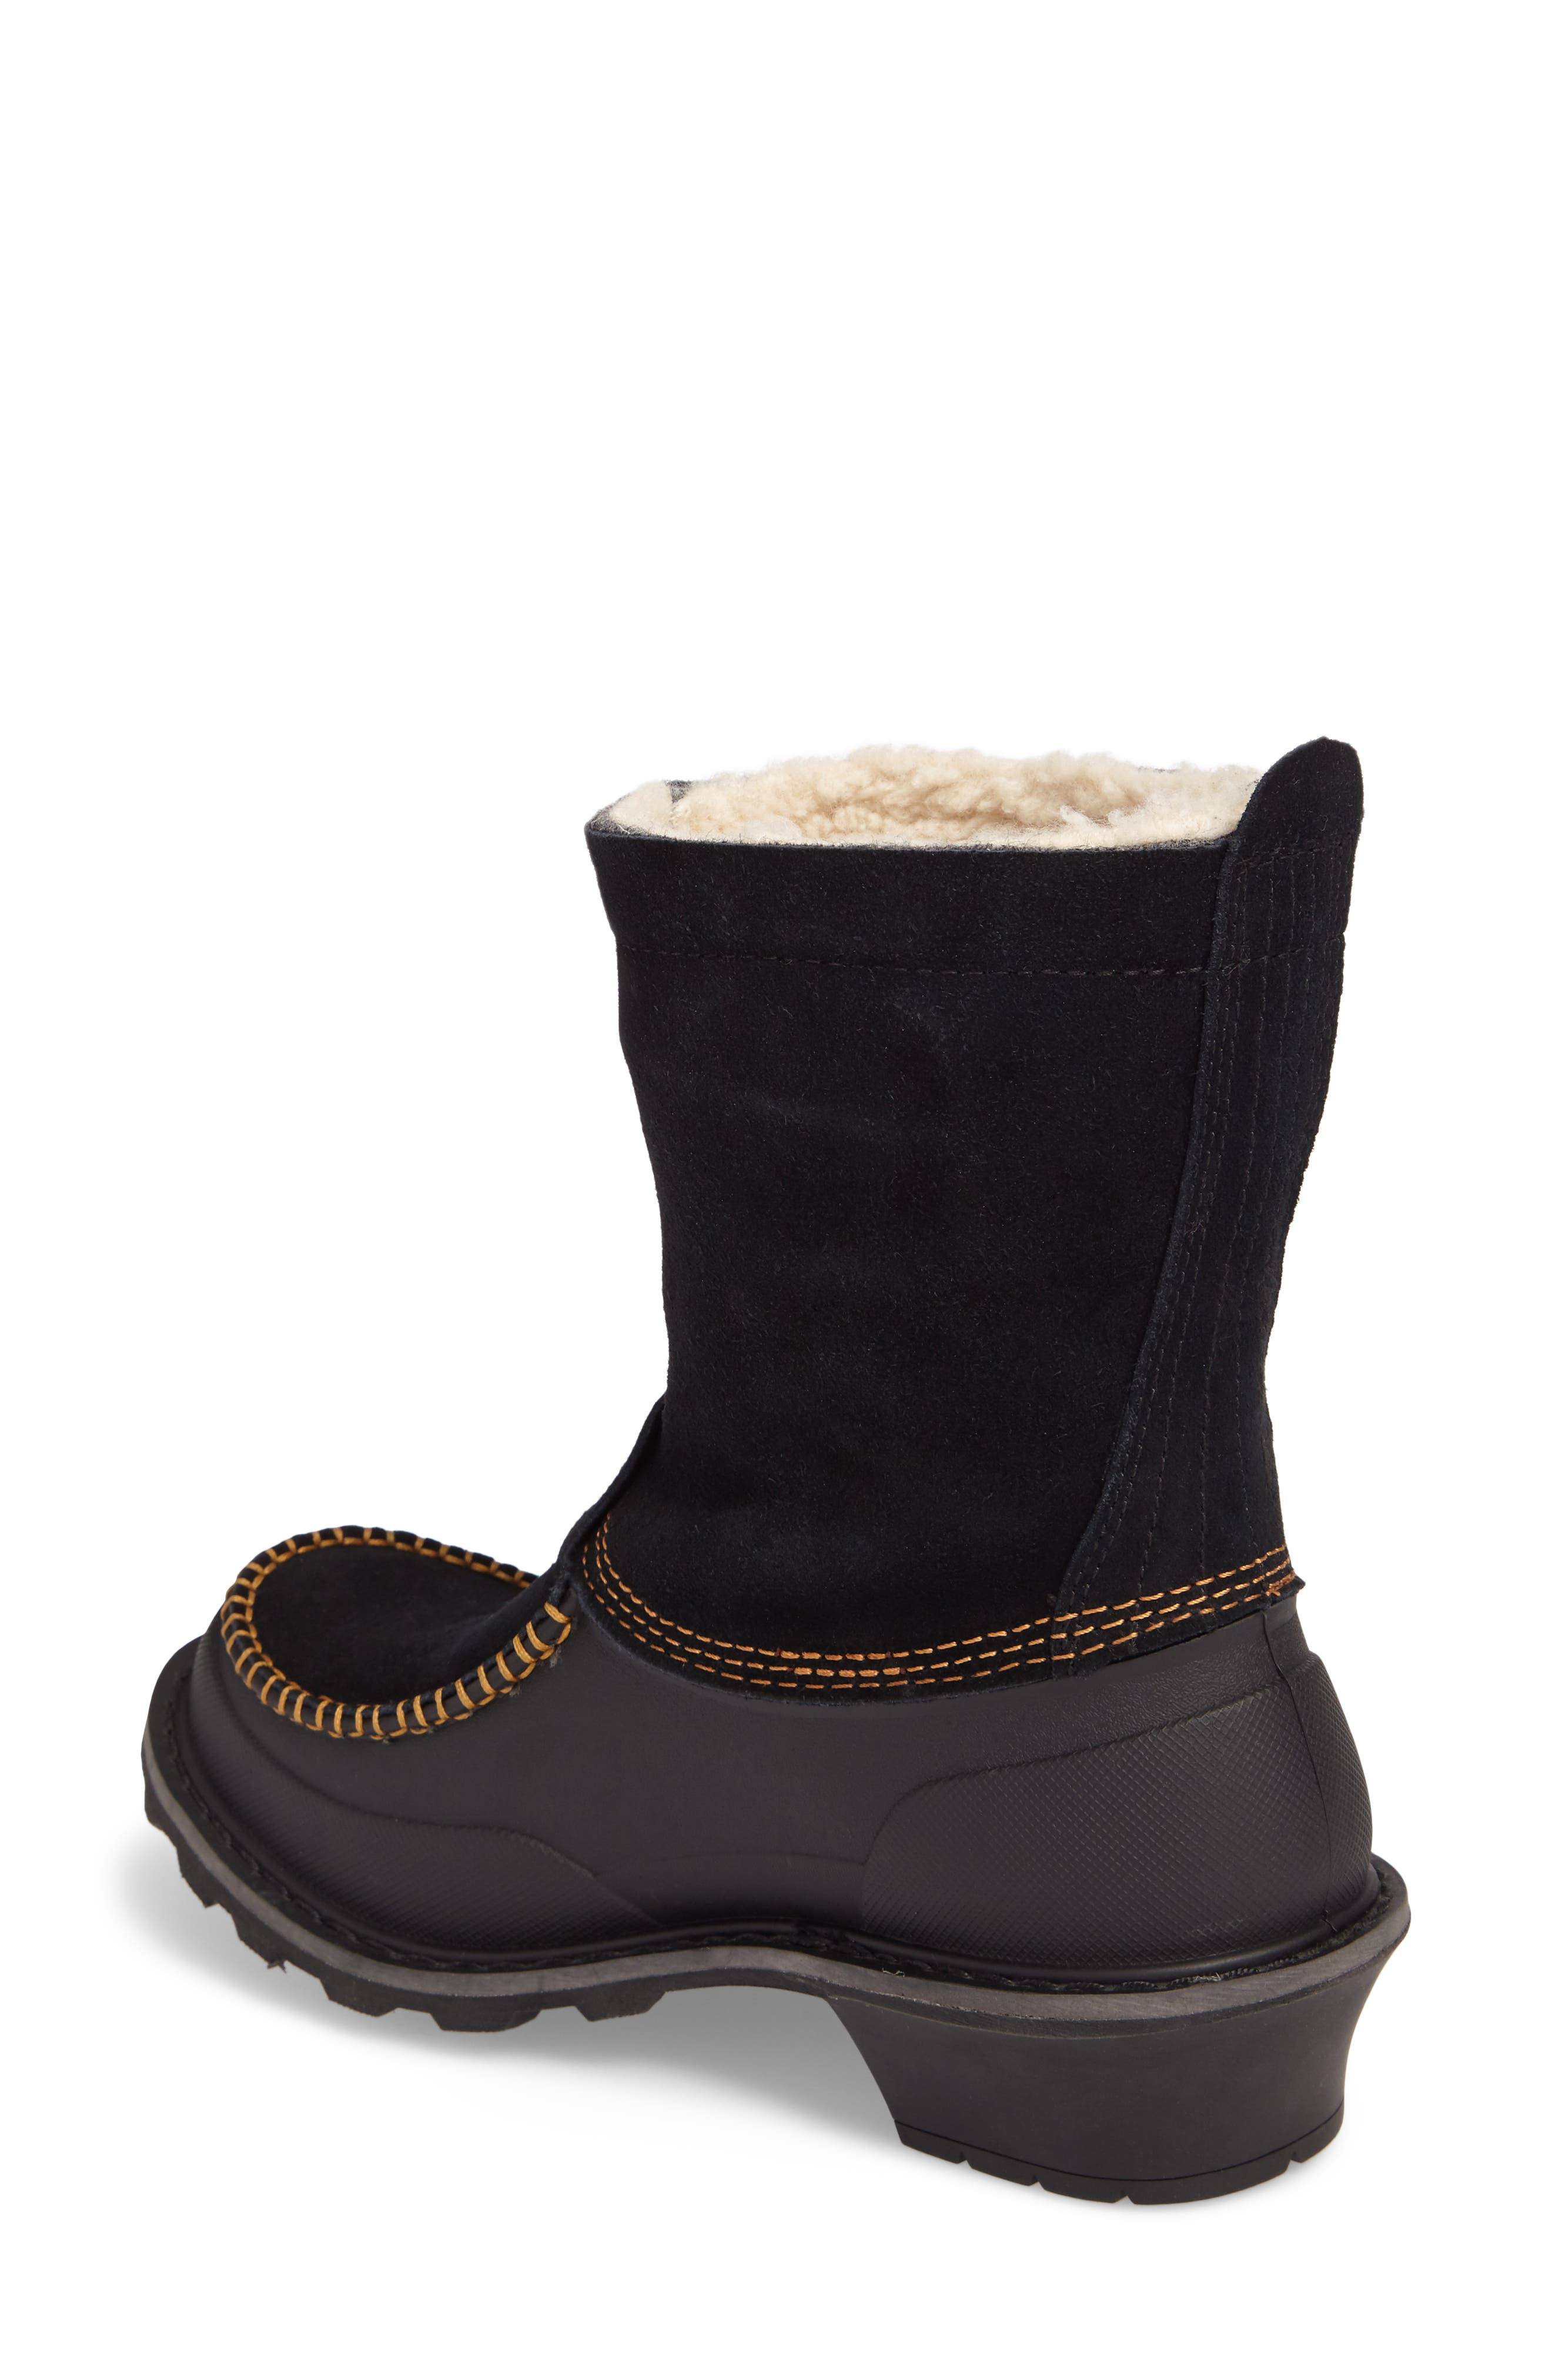 Fully Wooly Waterproof Winter Boot,                             Alternate thumbnail 3, color,